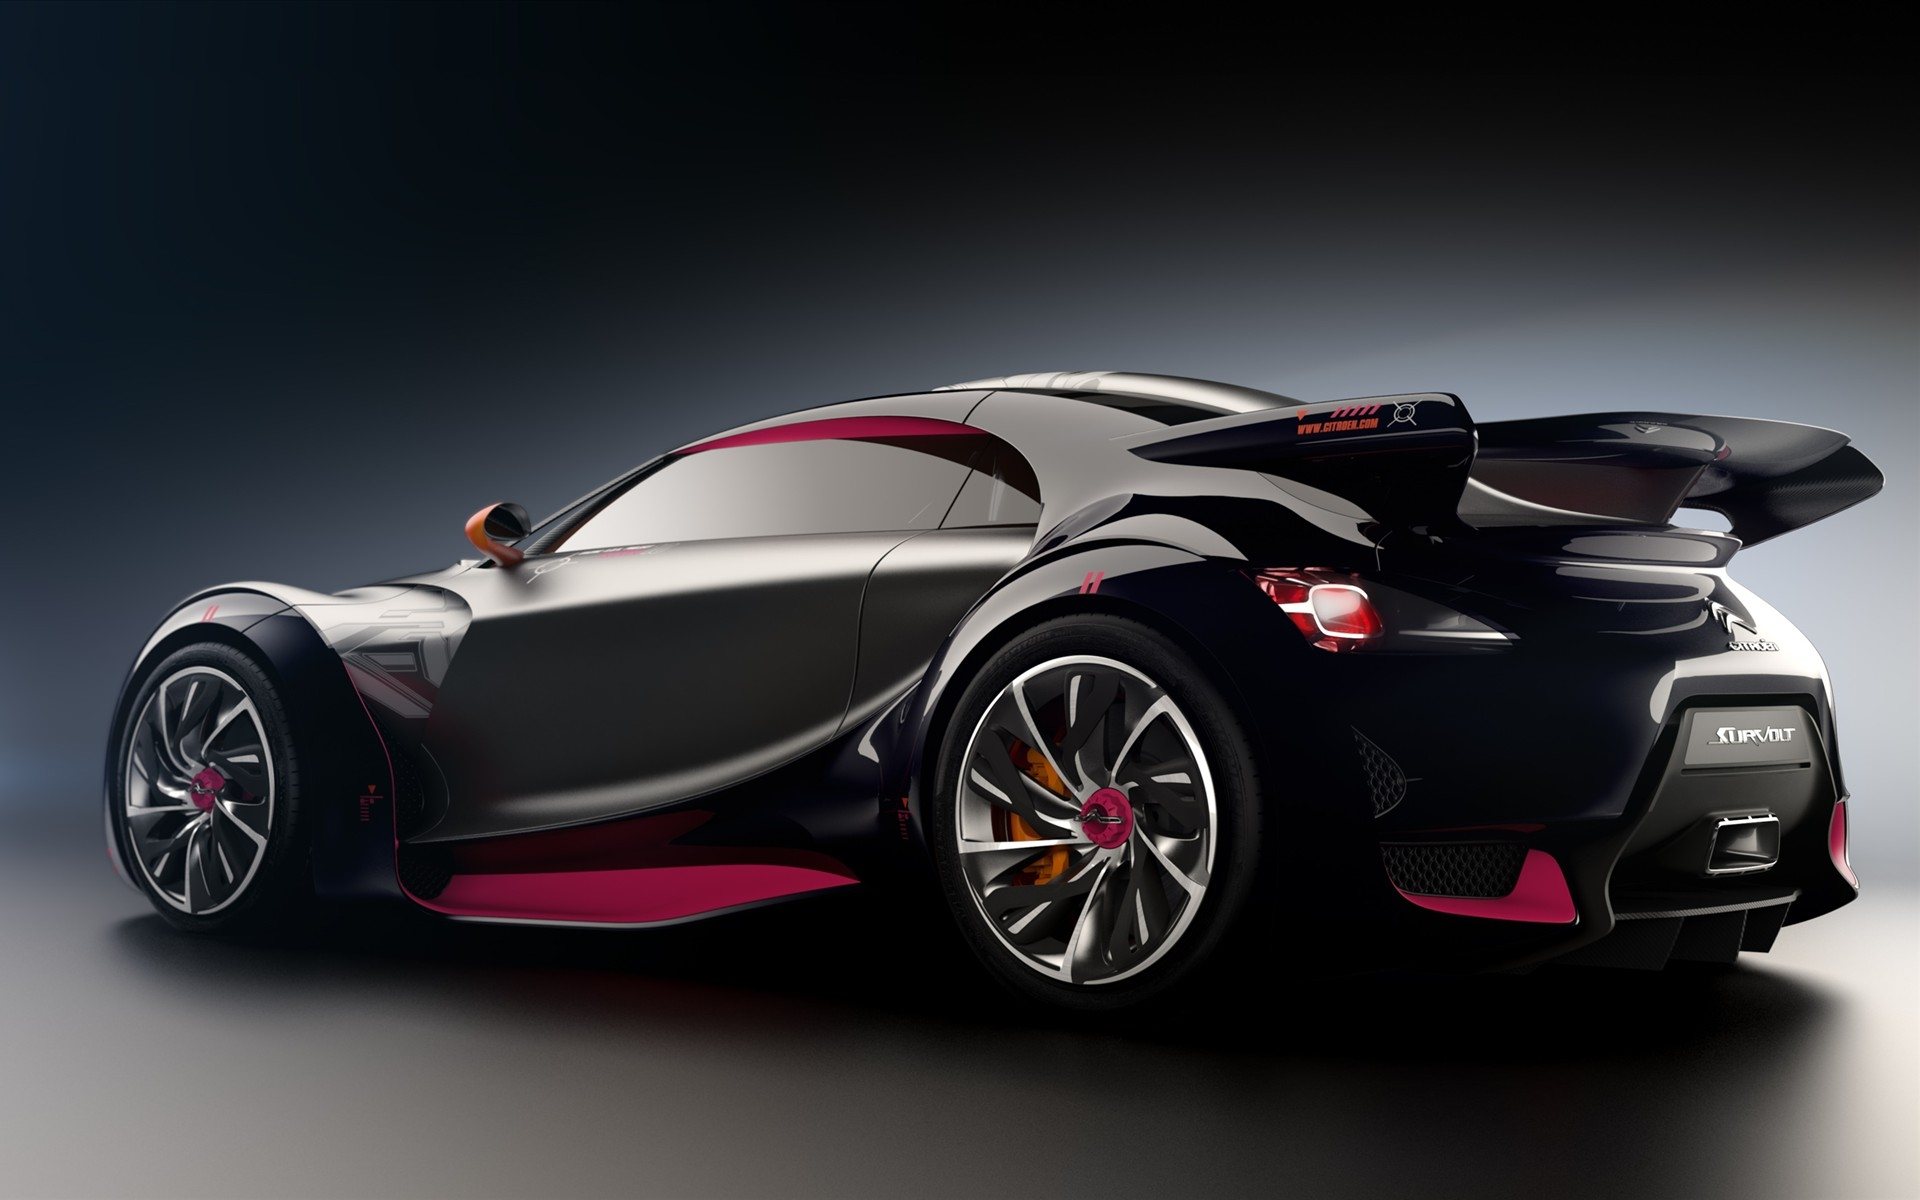 Black Citroen Sports Car HD Wallpaper